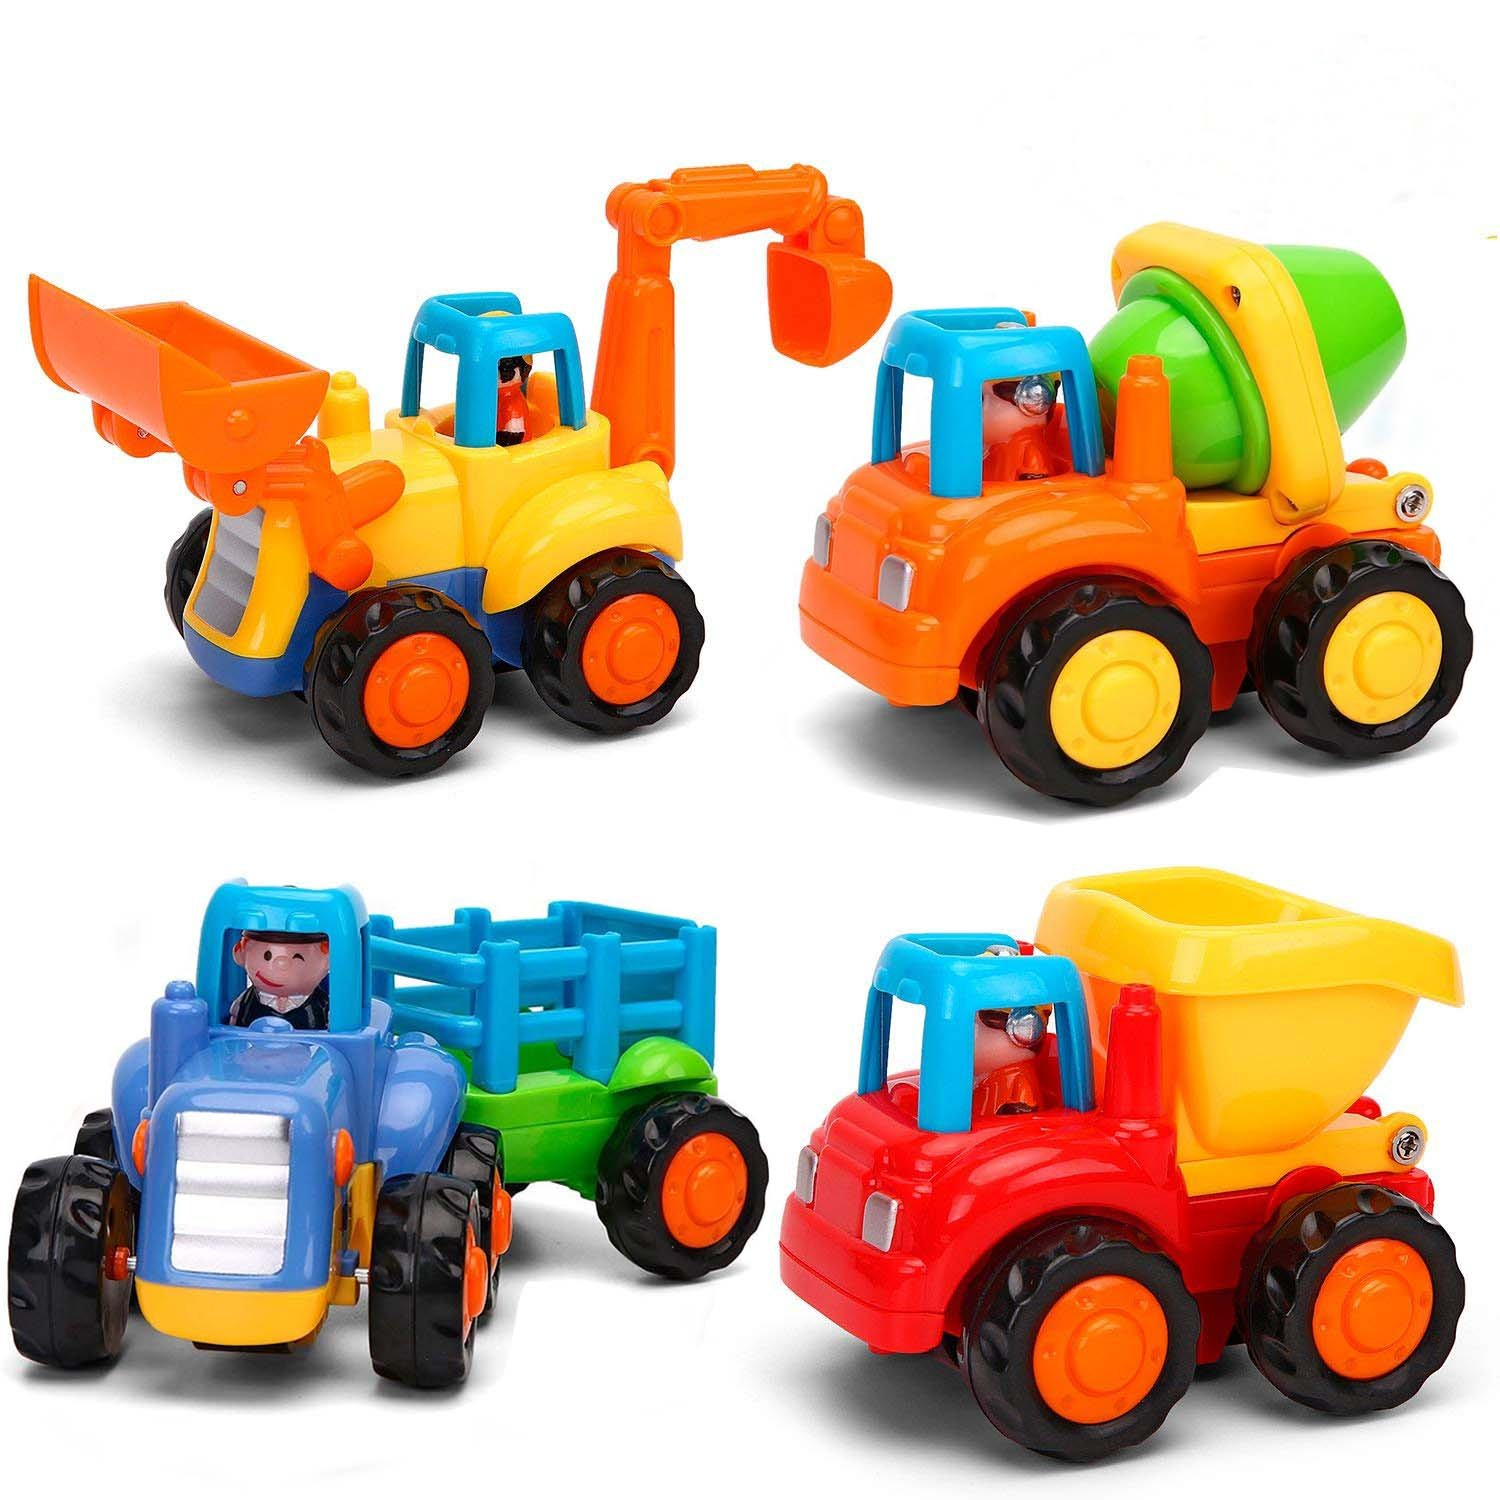 CCLIFE Push and Go Friction Powered Car Toys Early Educational Toddler Baby Toys for 1 3 Year Old Tractor Bulldozer Mixer Truck and Dumper Set of 4